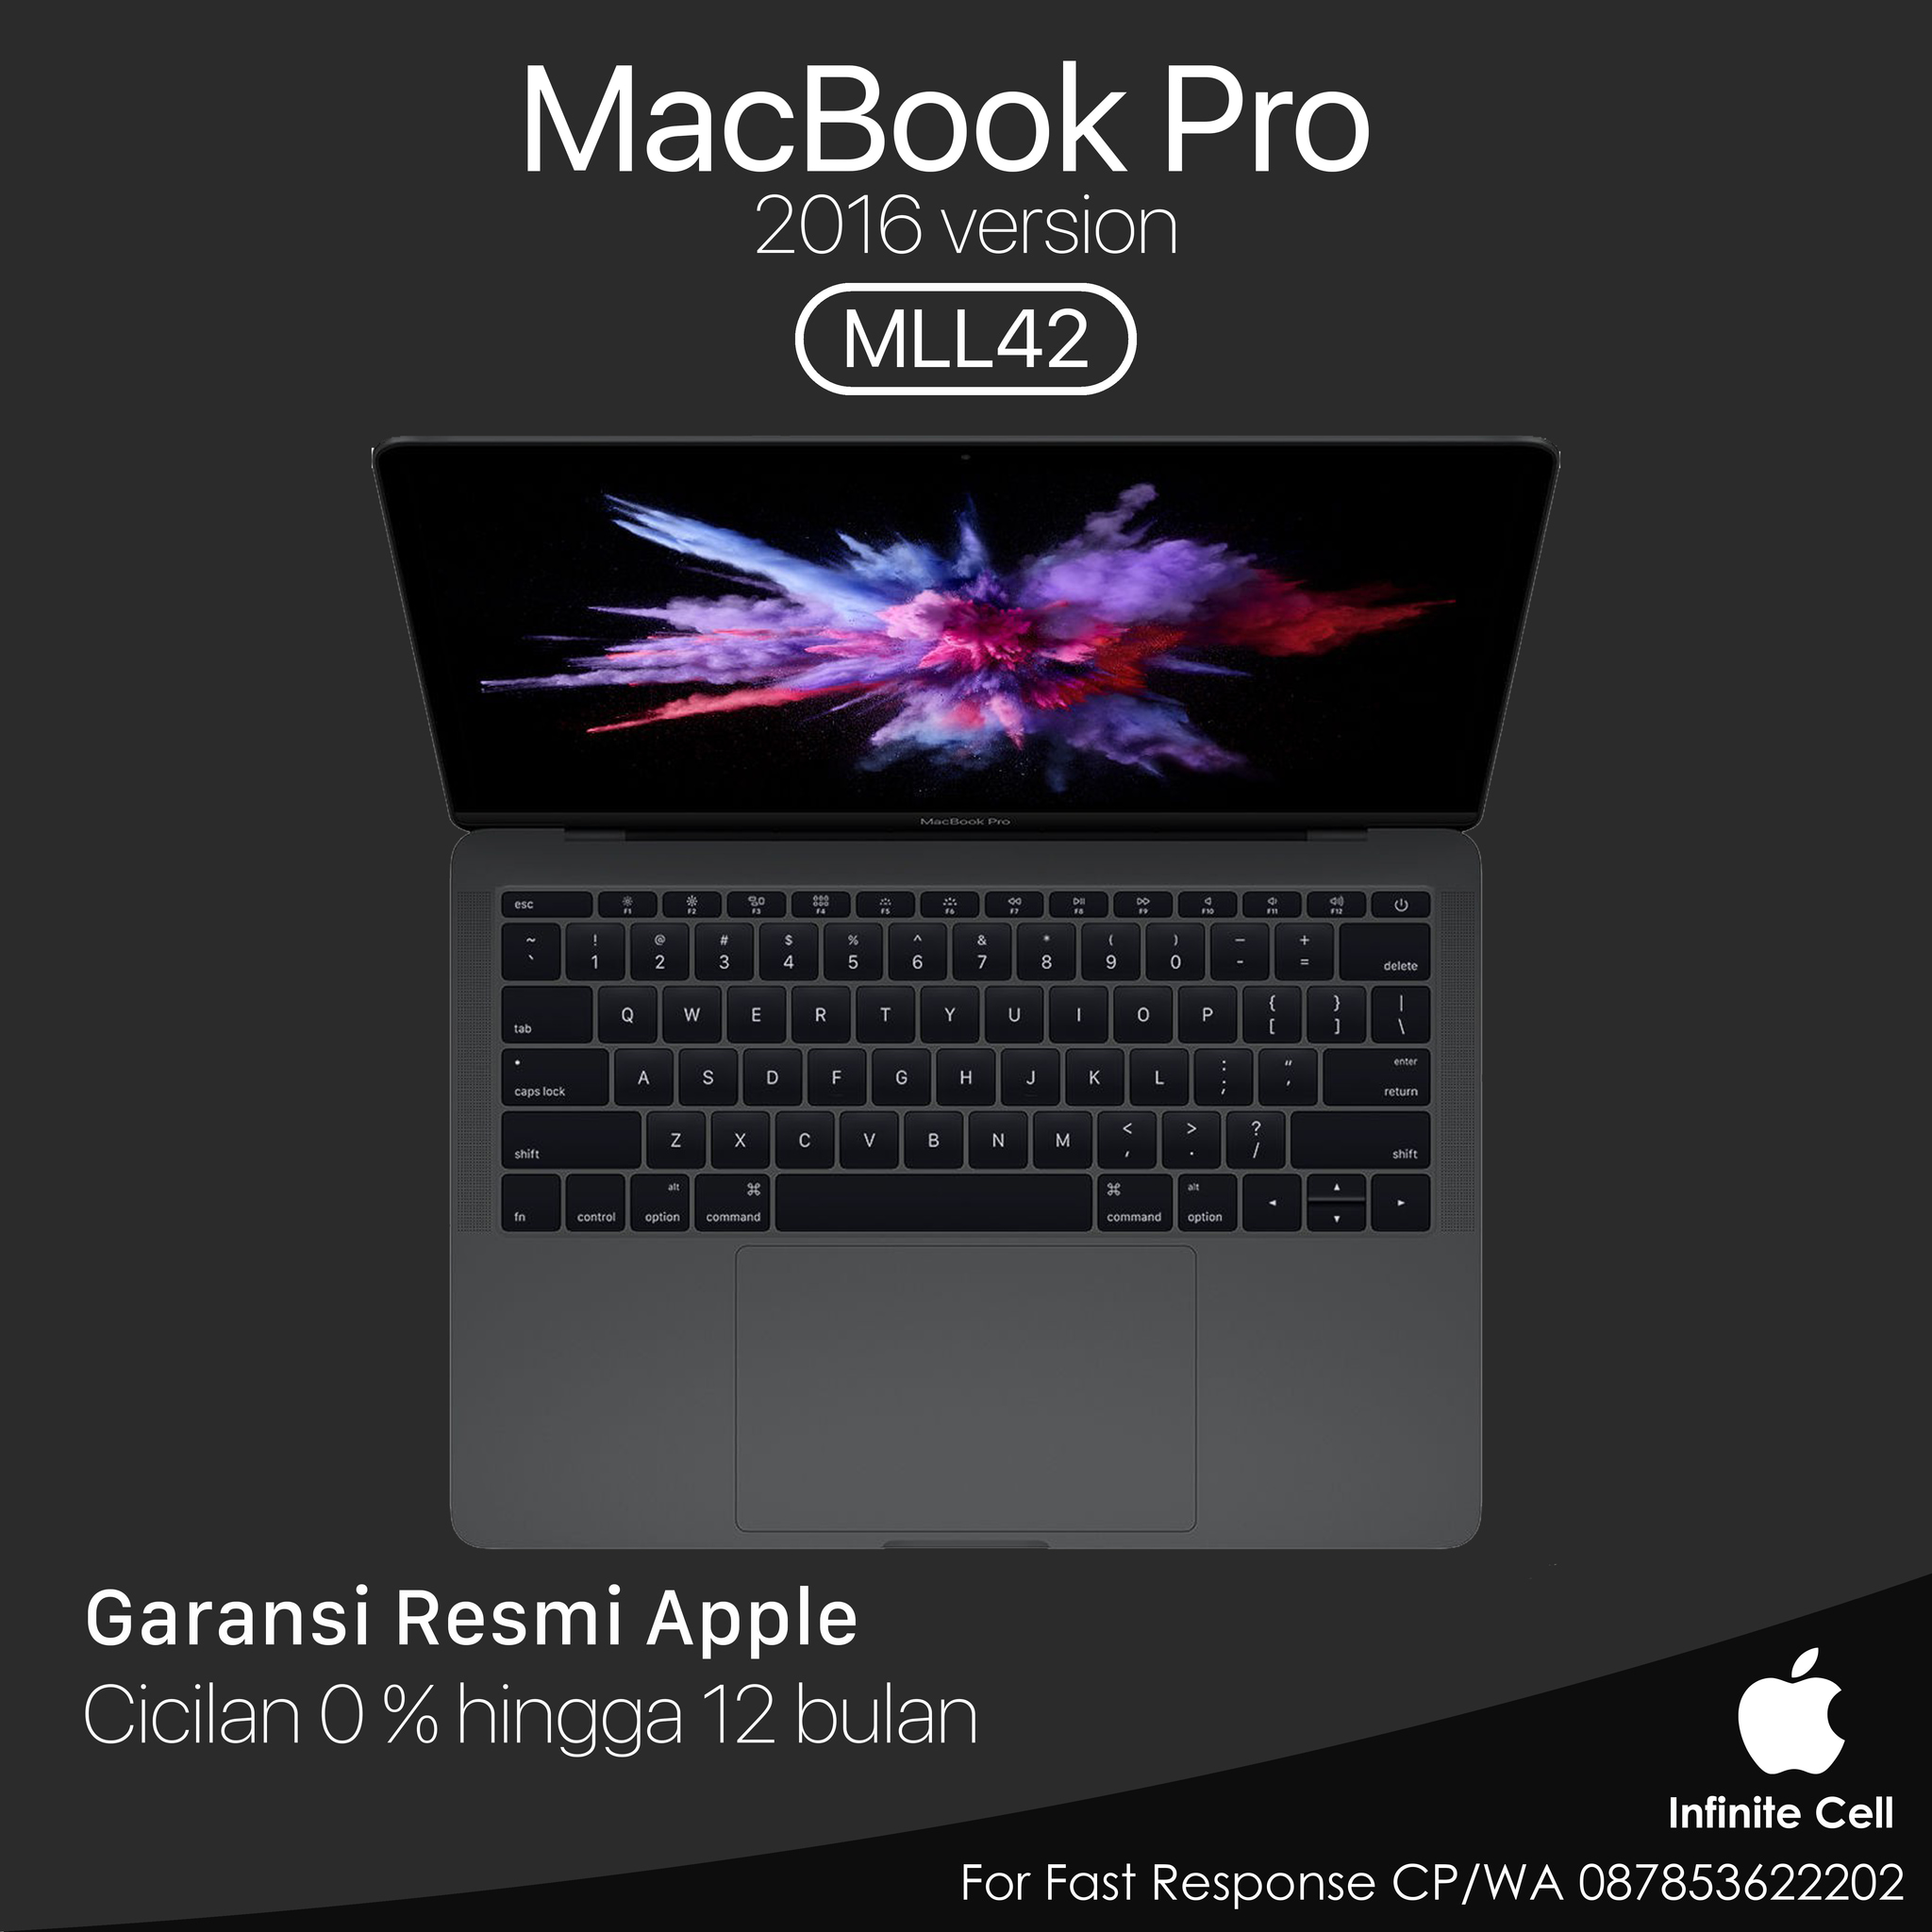 Jual Macbook Pro Retina Mll42 13 Core I5 20ghz 8gb 256gb Ssd Iris Apple Grey 540 Infinite Cell Tokopedia